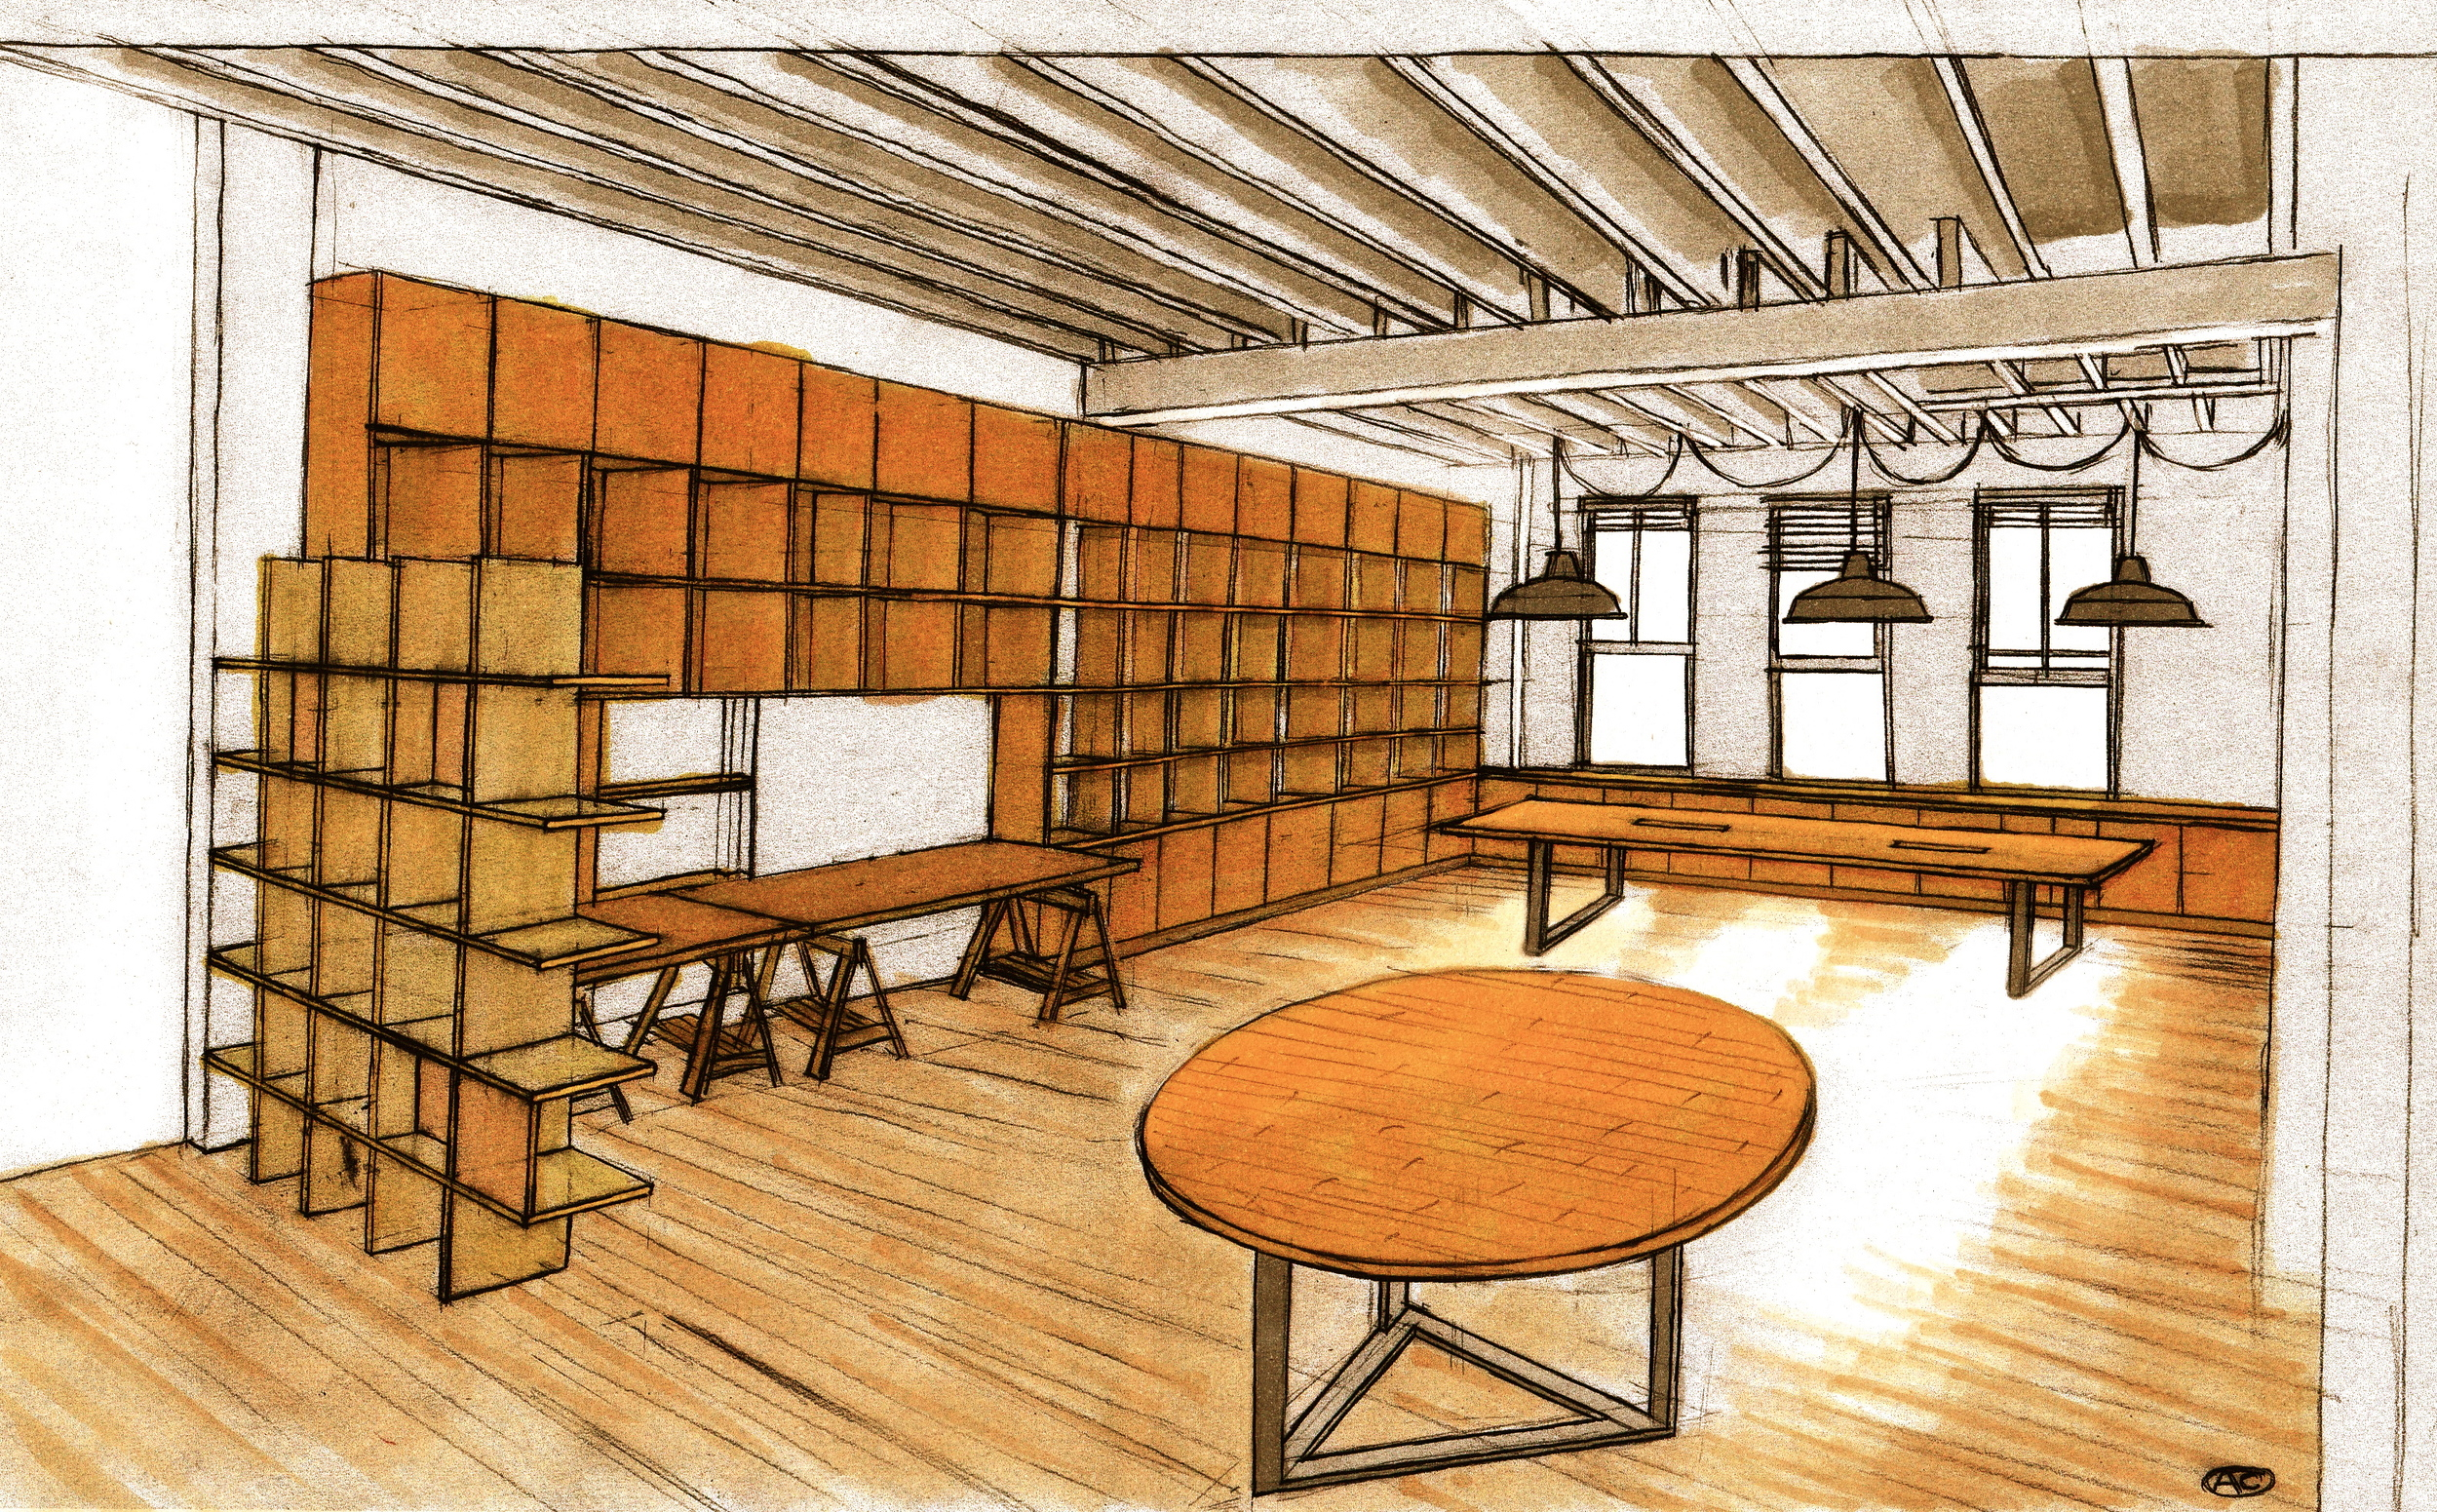 Concept for Photoplay office fit out, including furniture and cabinetry design